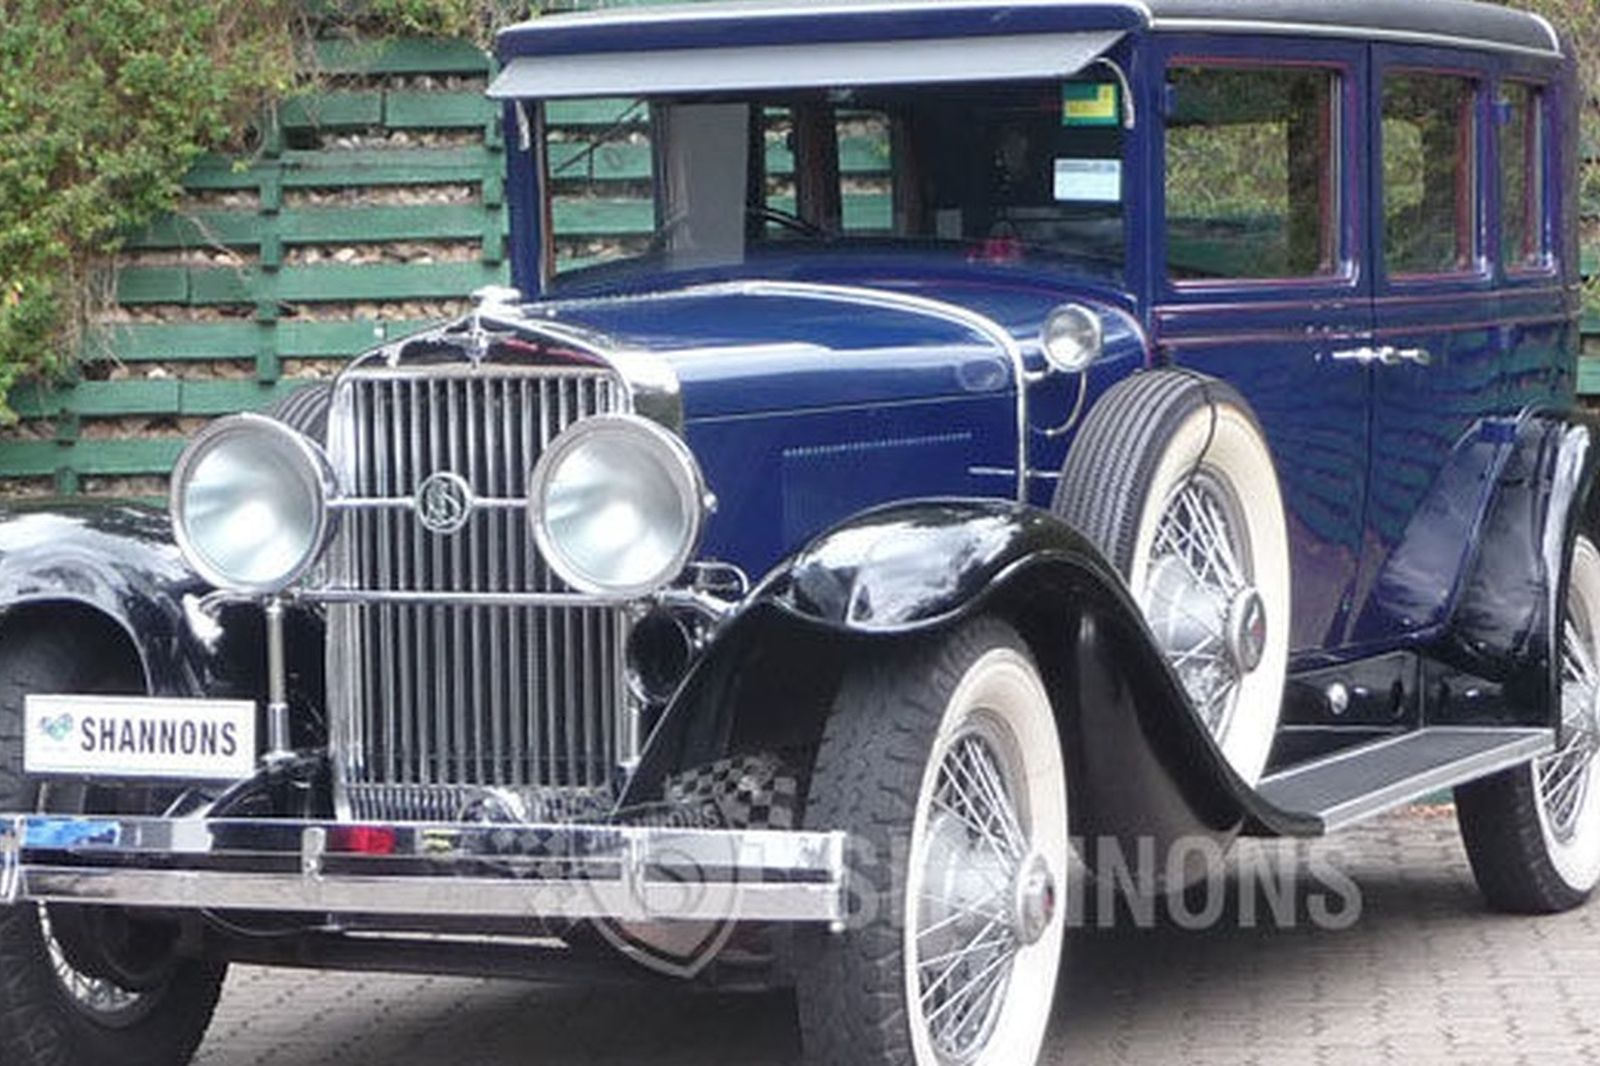 Sold cadillac lasalle 314 a 7 seater limousine rhd for Motor vehicle open on saturday